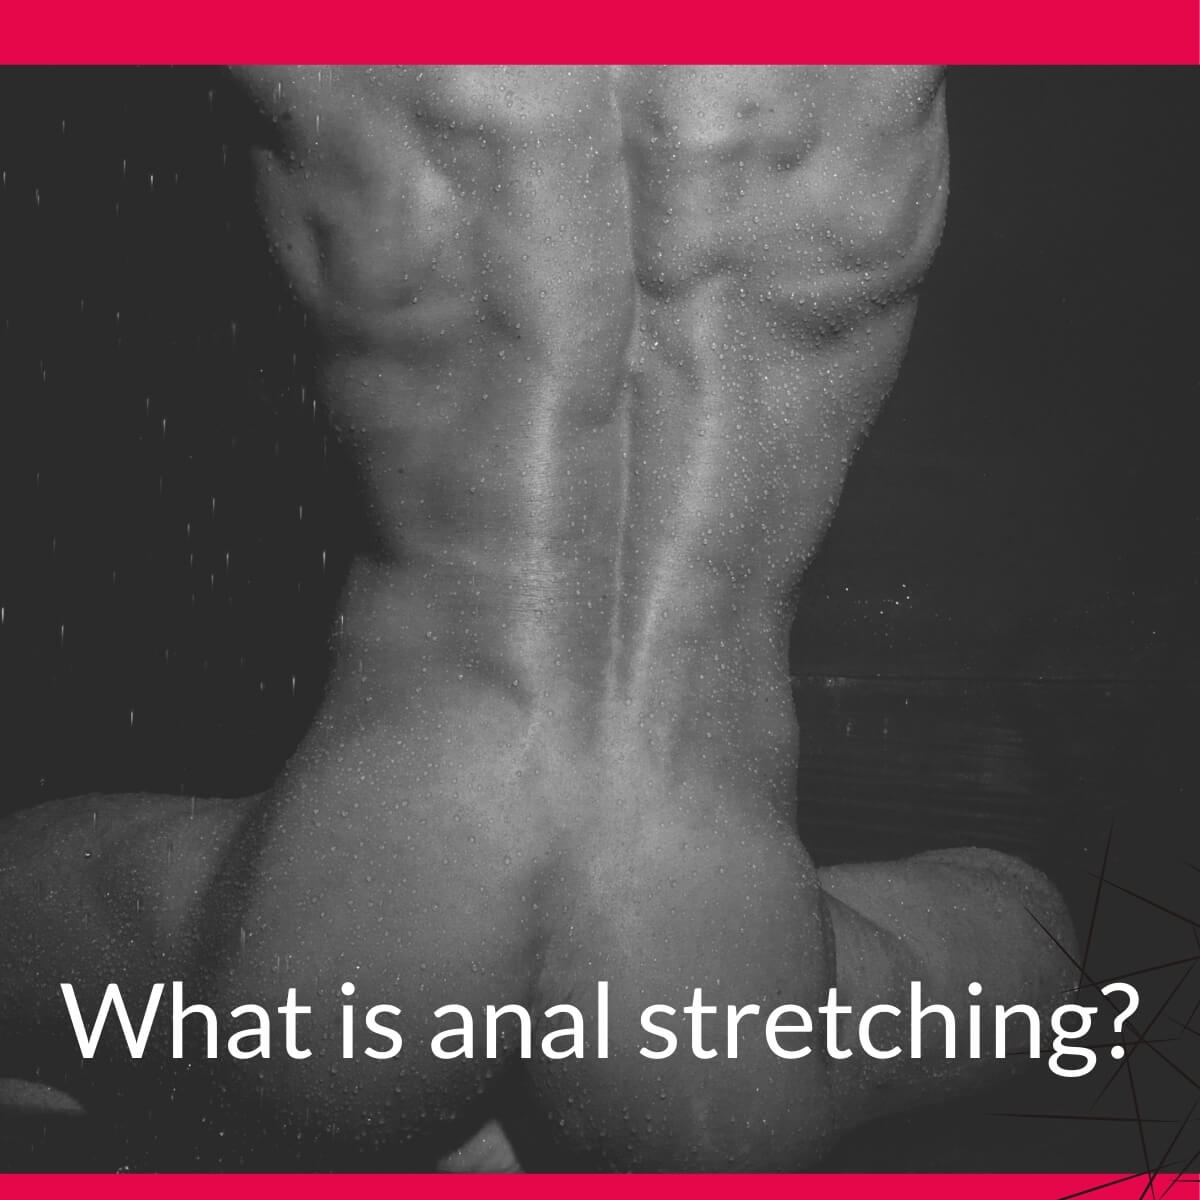 what is anal stretching?